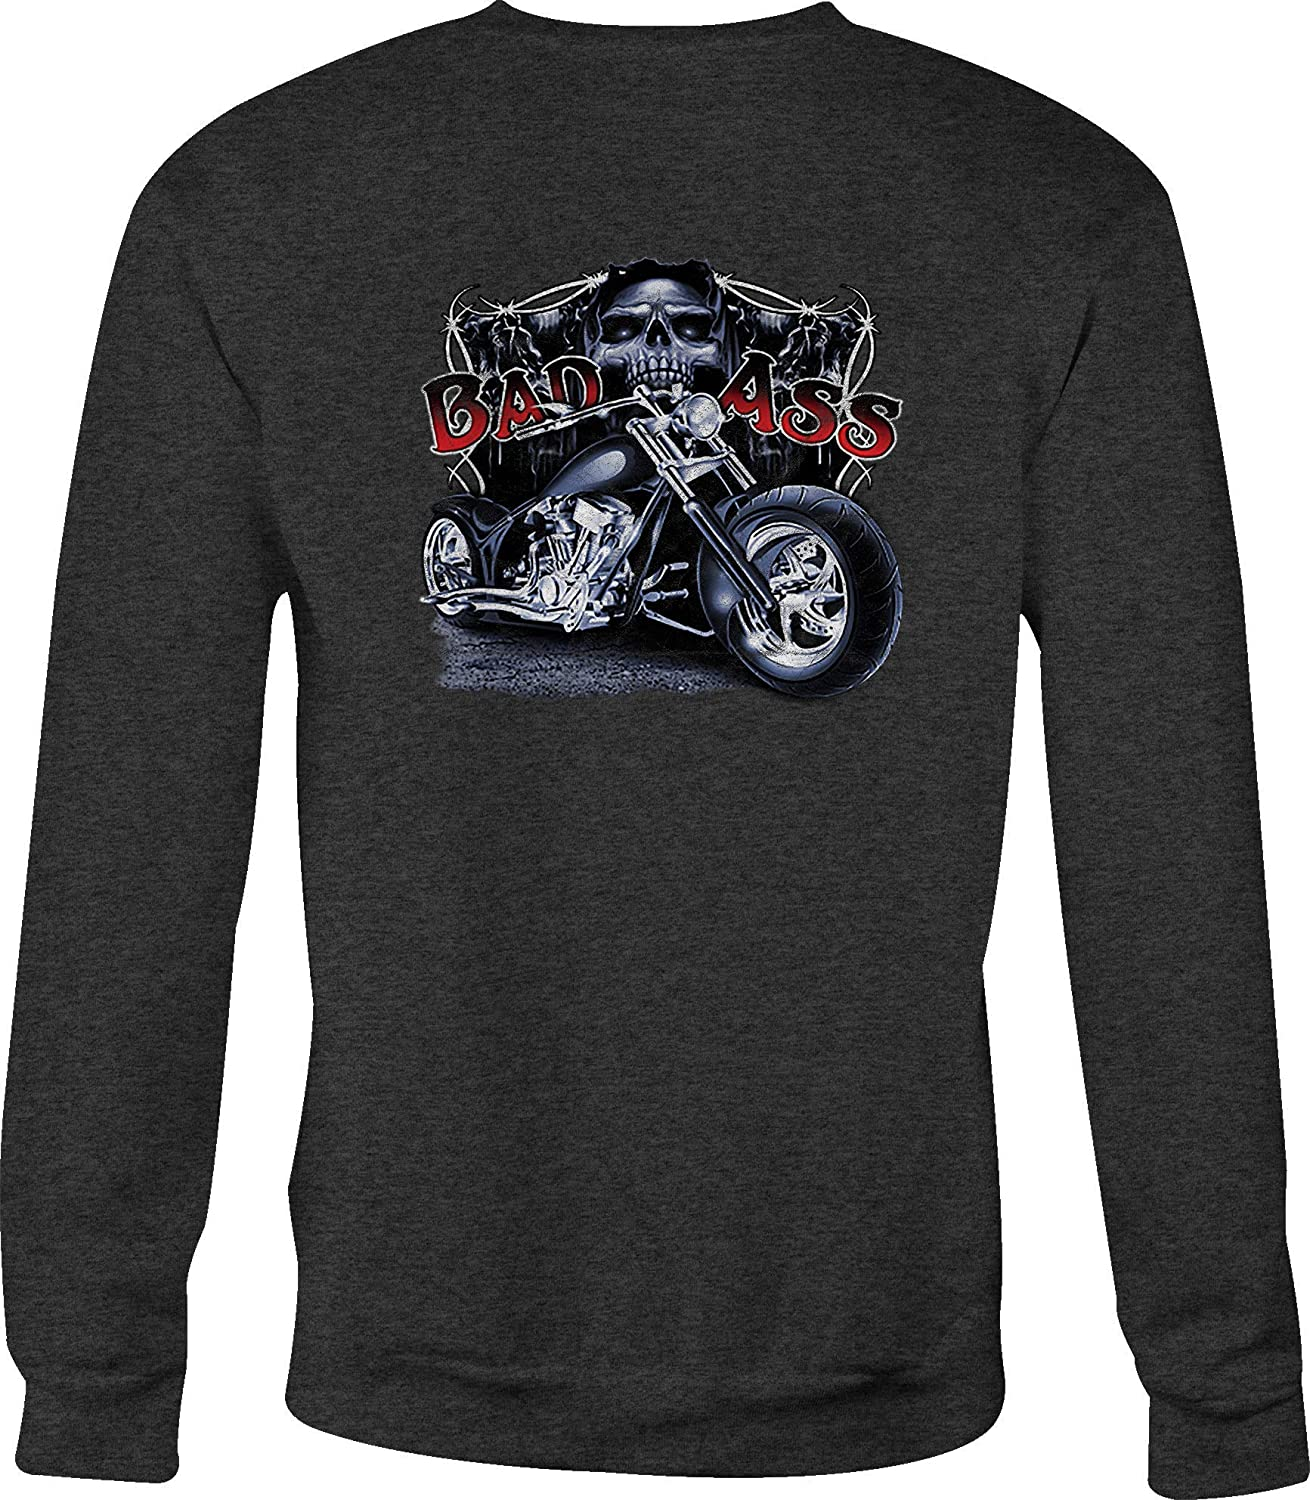 Motorcycle Crewneck Sweatshirt Bad Ass Chopper